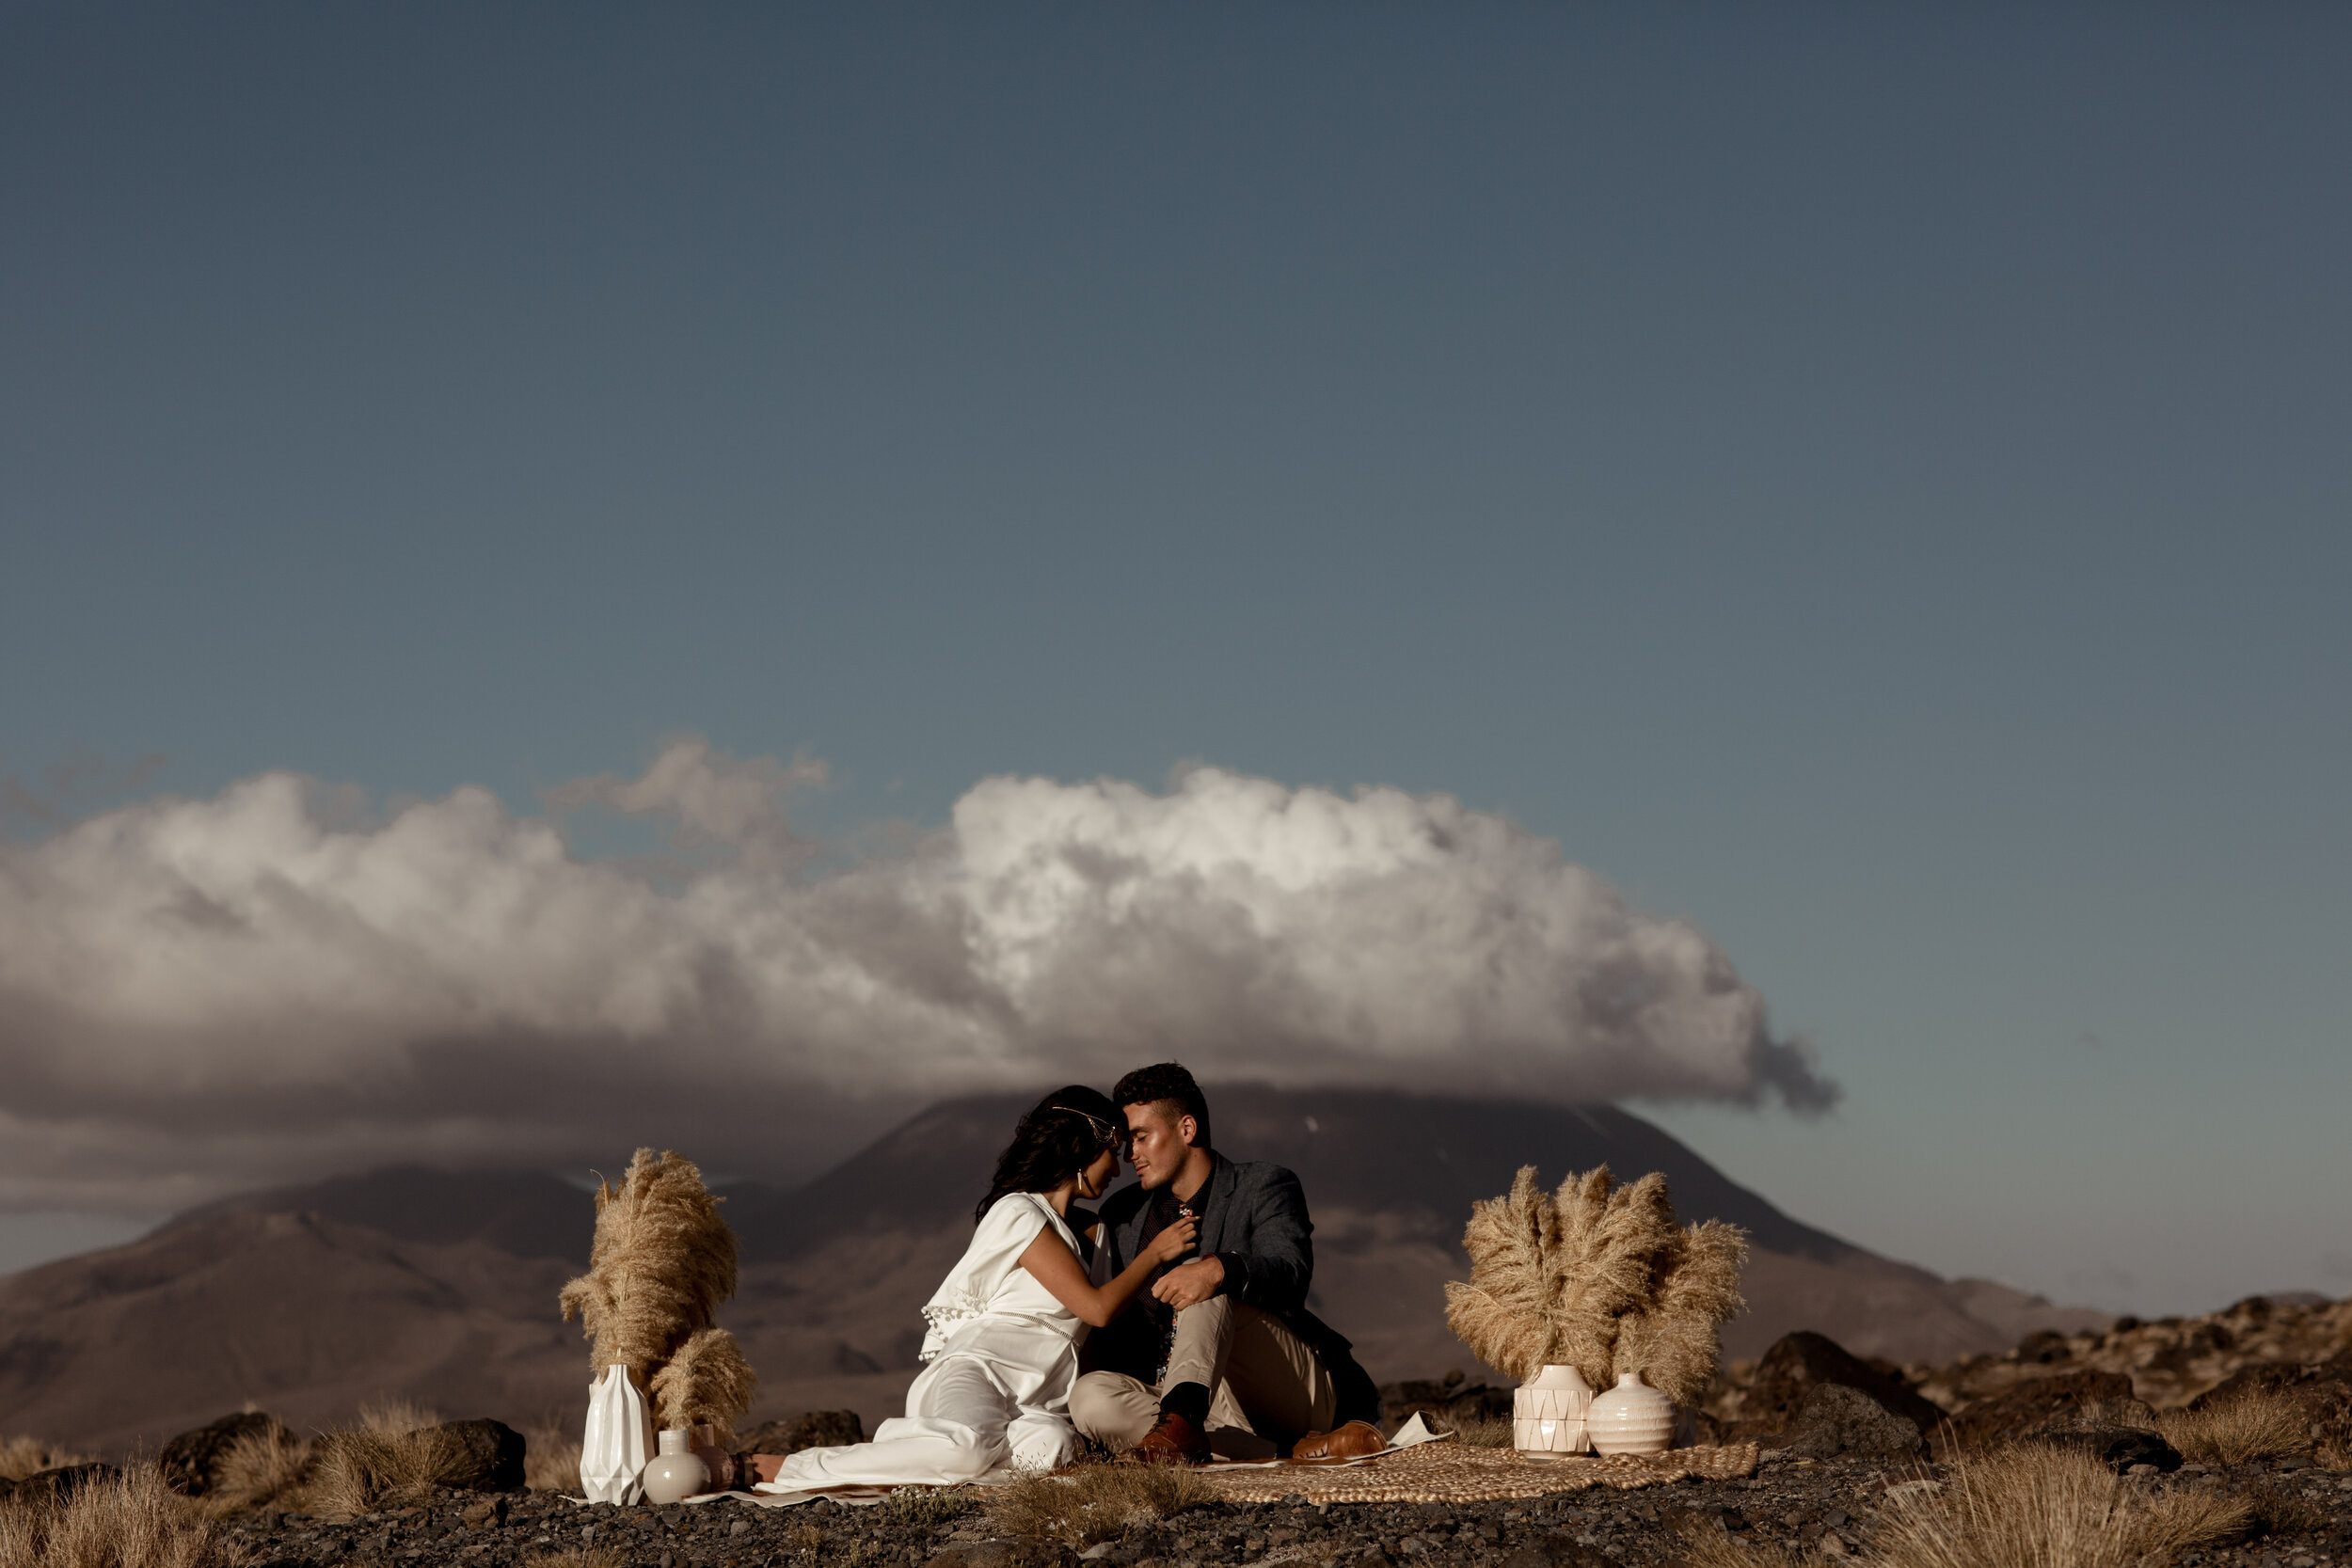 Wedding photography giveaway - 9 hours with 2 shooters